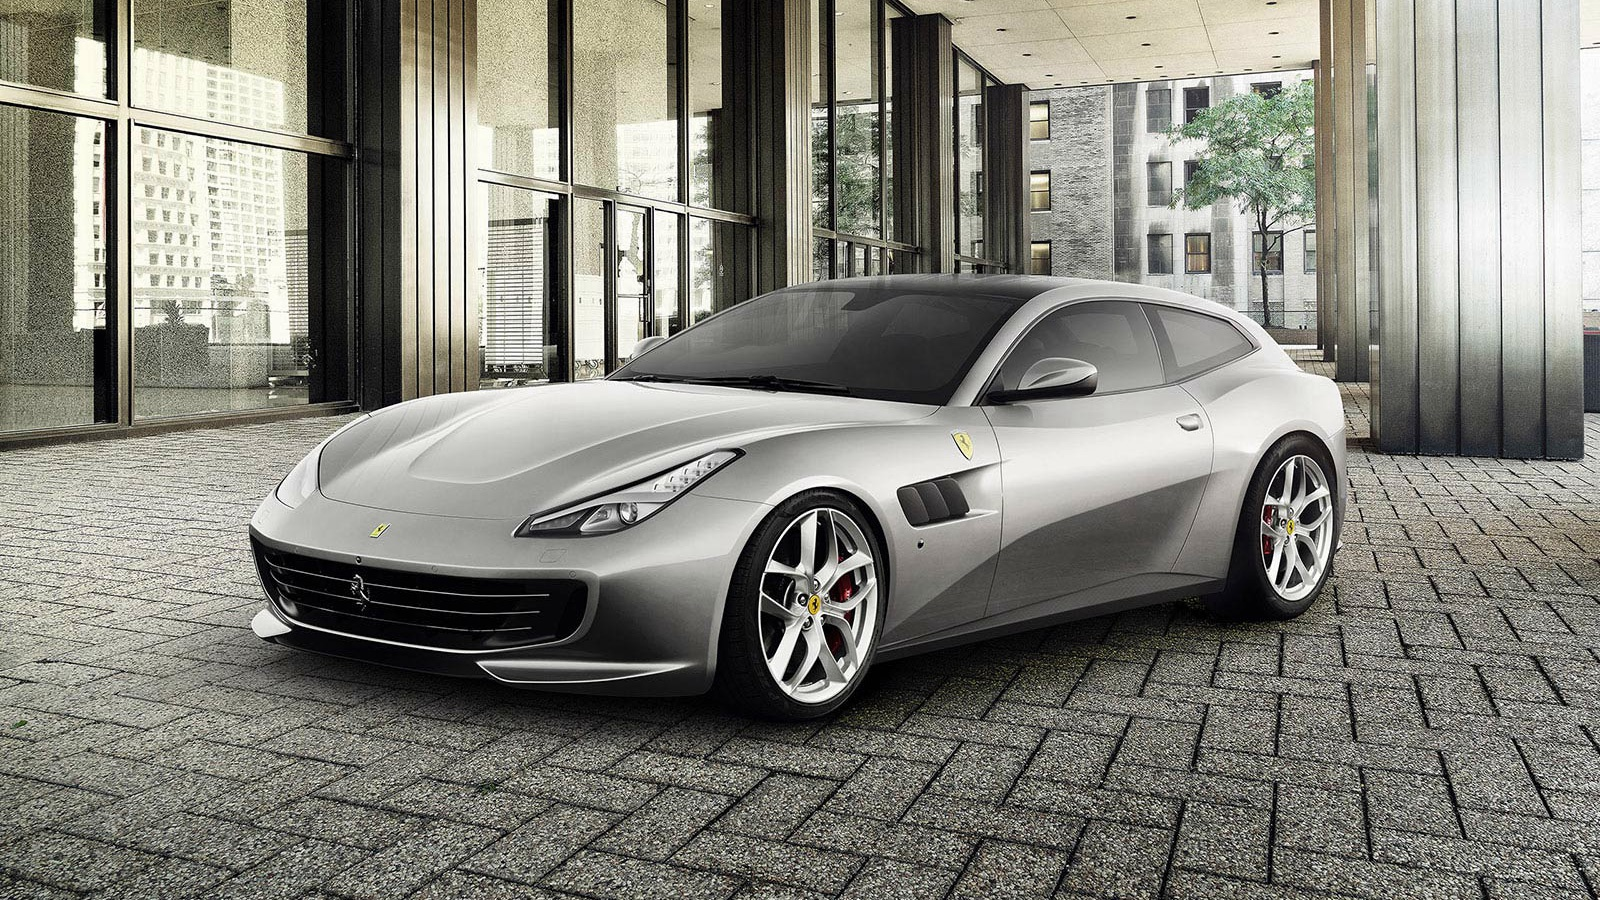 New 2019 Ferrari GTC4LUSSO T  For Sale In Westport, CT 232_main